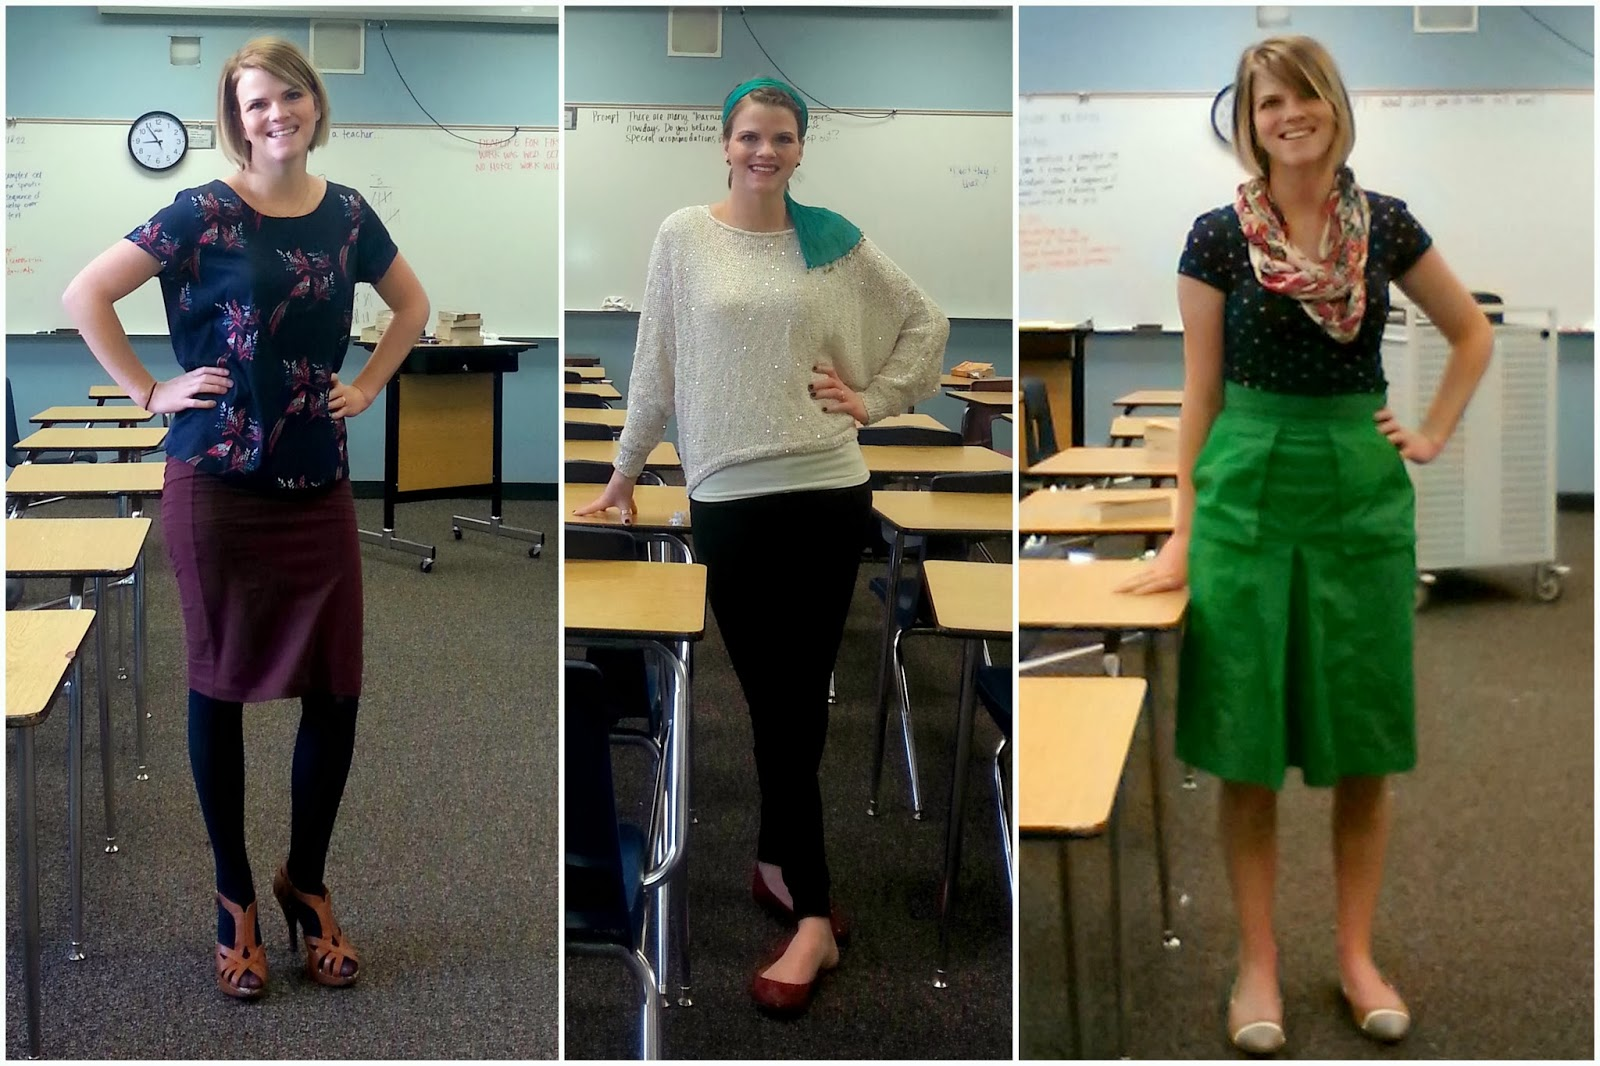 Skinniest Person In The World 2013 What i wore + what we did in class ... Ugliest Person In The World Guinness World Record